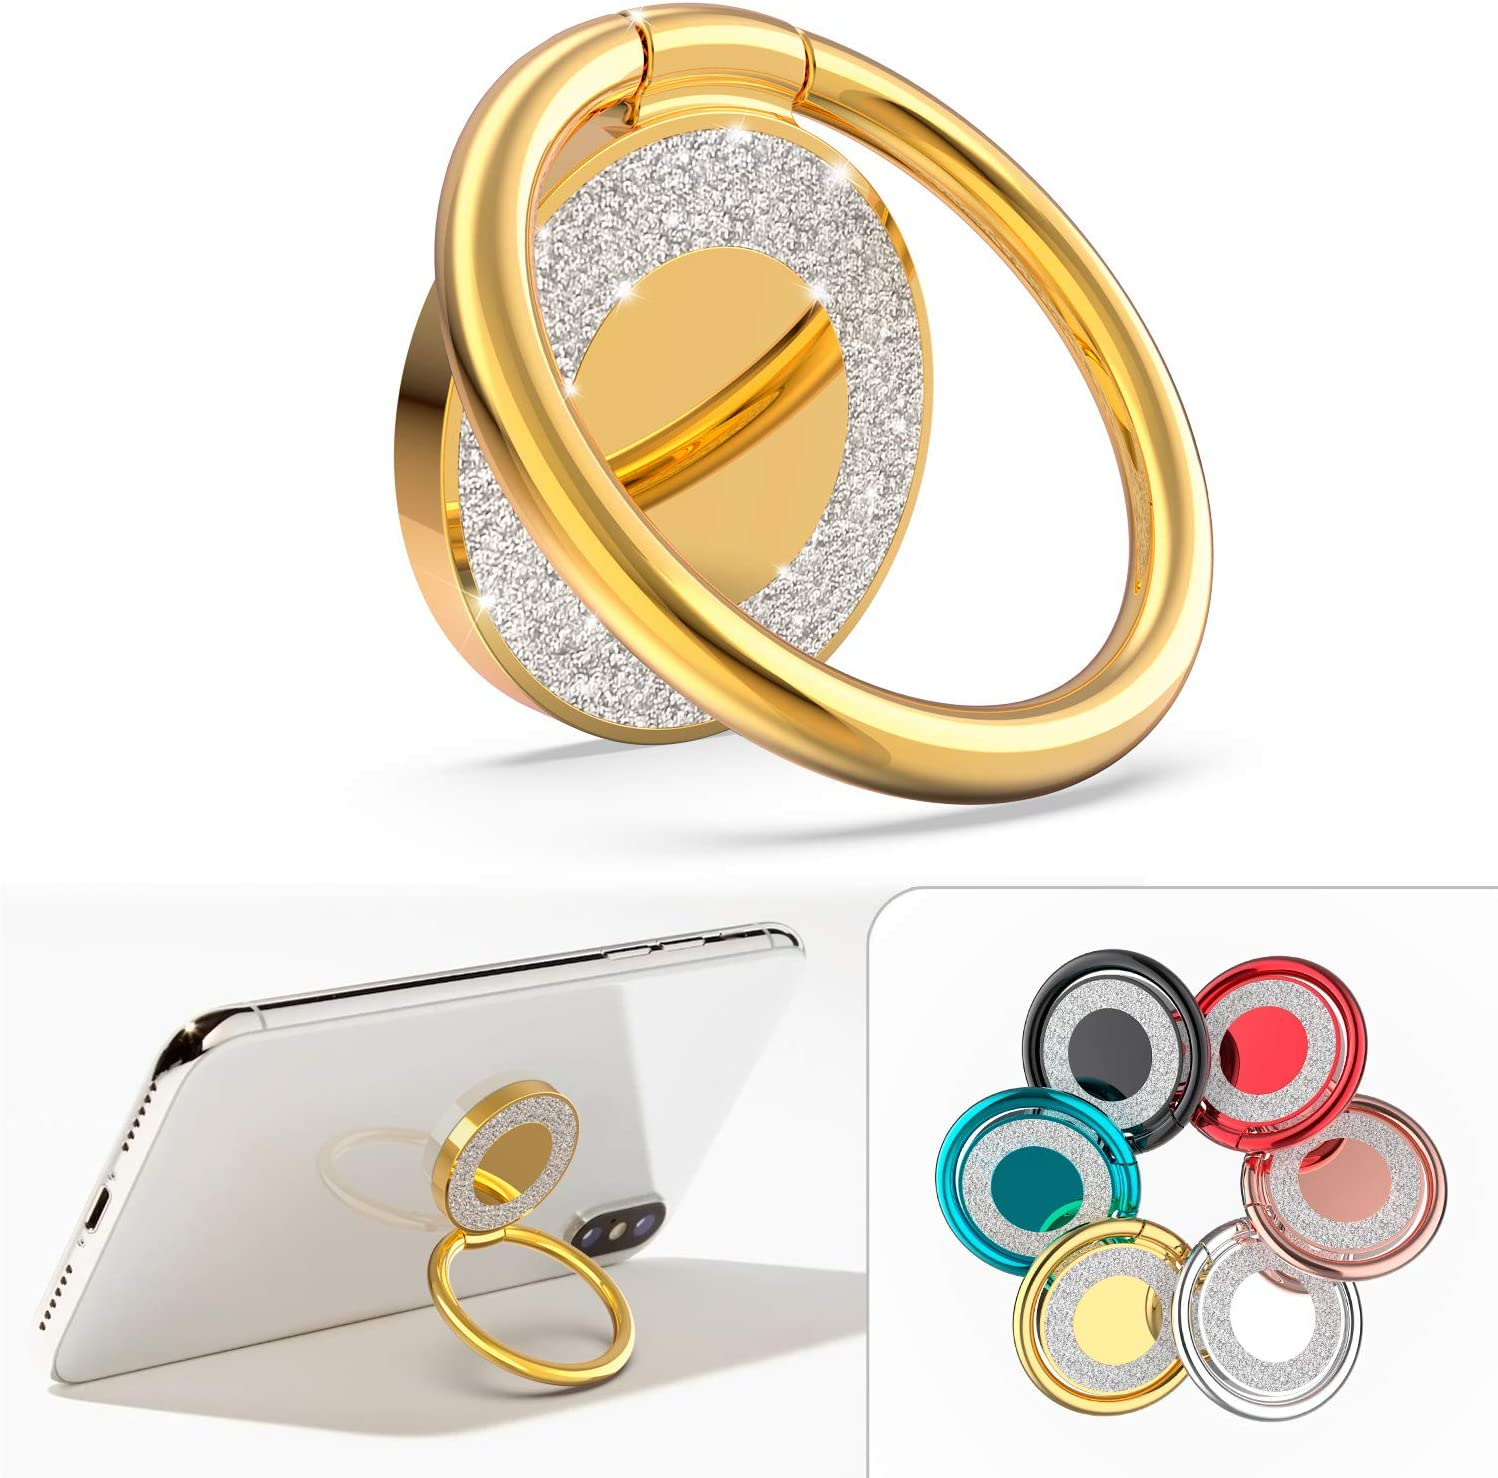 Phone Ring Holder Finger Kickstand, Allengel Bling Metal Phone Ring Grip Stand for Strongly Magnetic Car Mount Compatible with iPhone/Samsung/LG/Sony/HTC, Gold